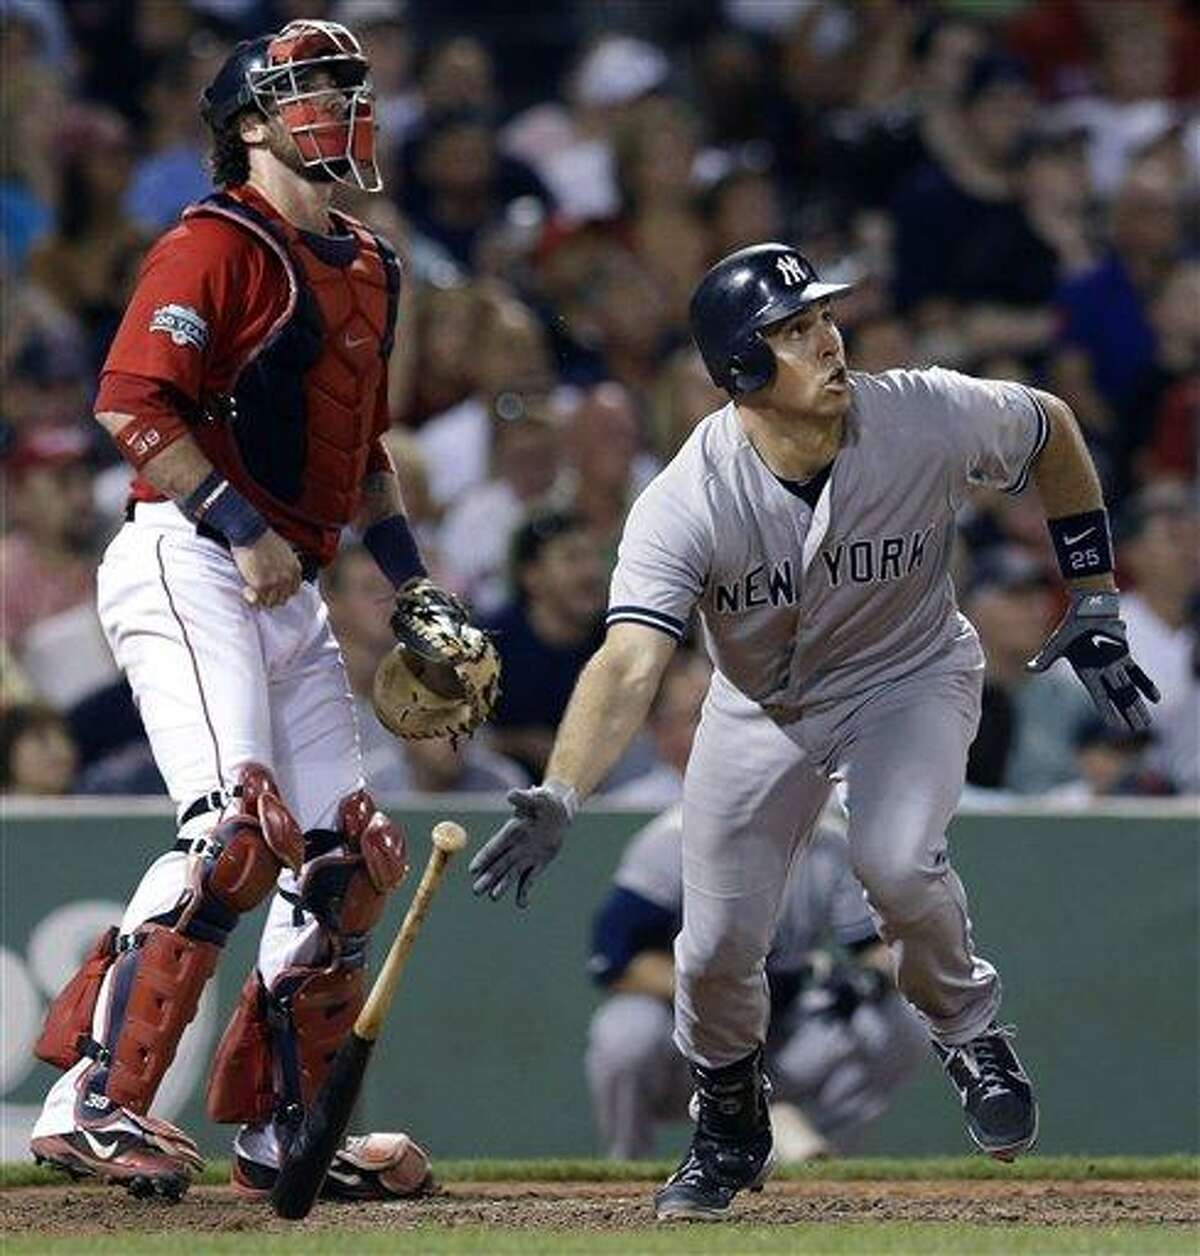 New York Yankees' Mark Teixeira watches his two-run triple next to Boston Red Sox catcher Jarrod Saltalamacchia during the seventh inning of a baseball game at Fenway Park in Boston on Friday, July 6, 2012. The Yankees won 10-8. (AP Photo/Elise Amendola)